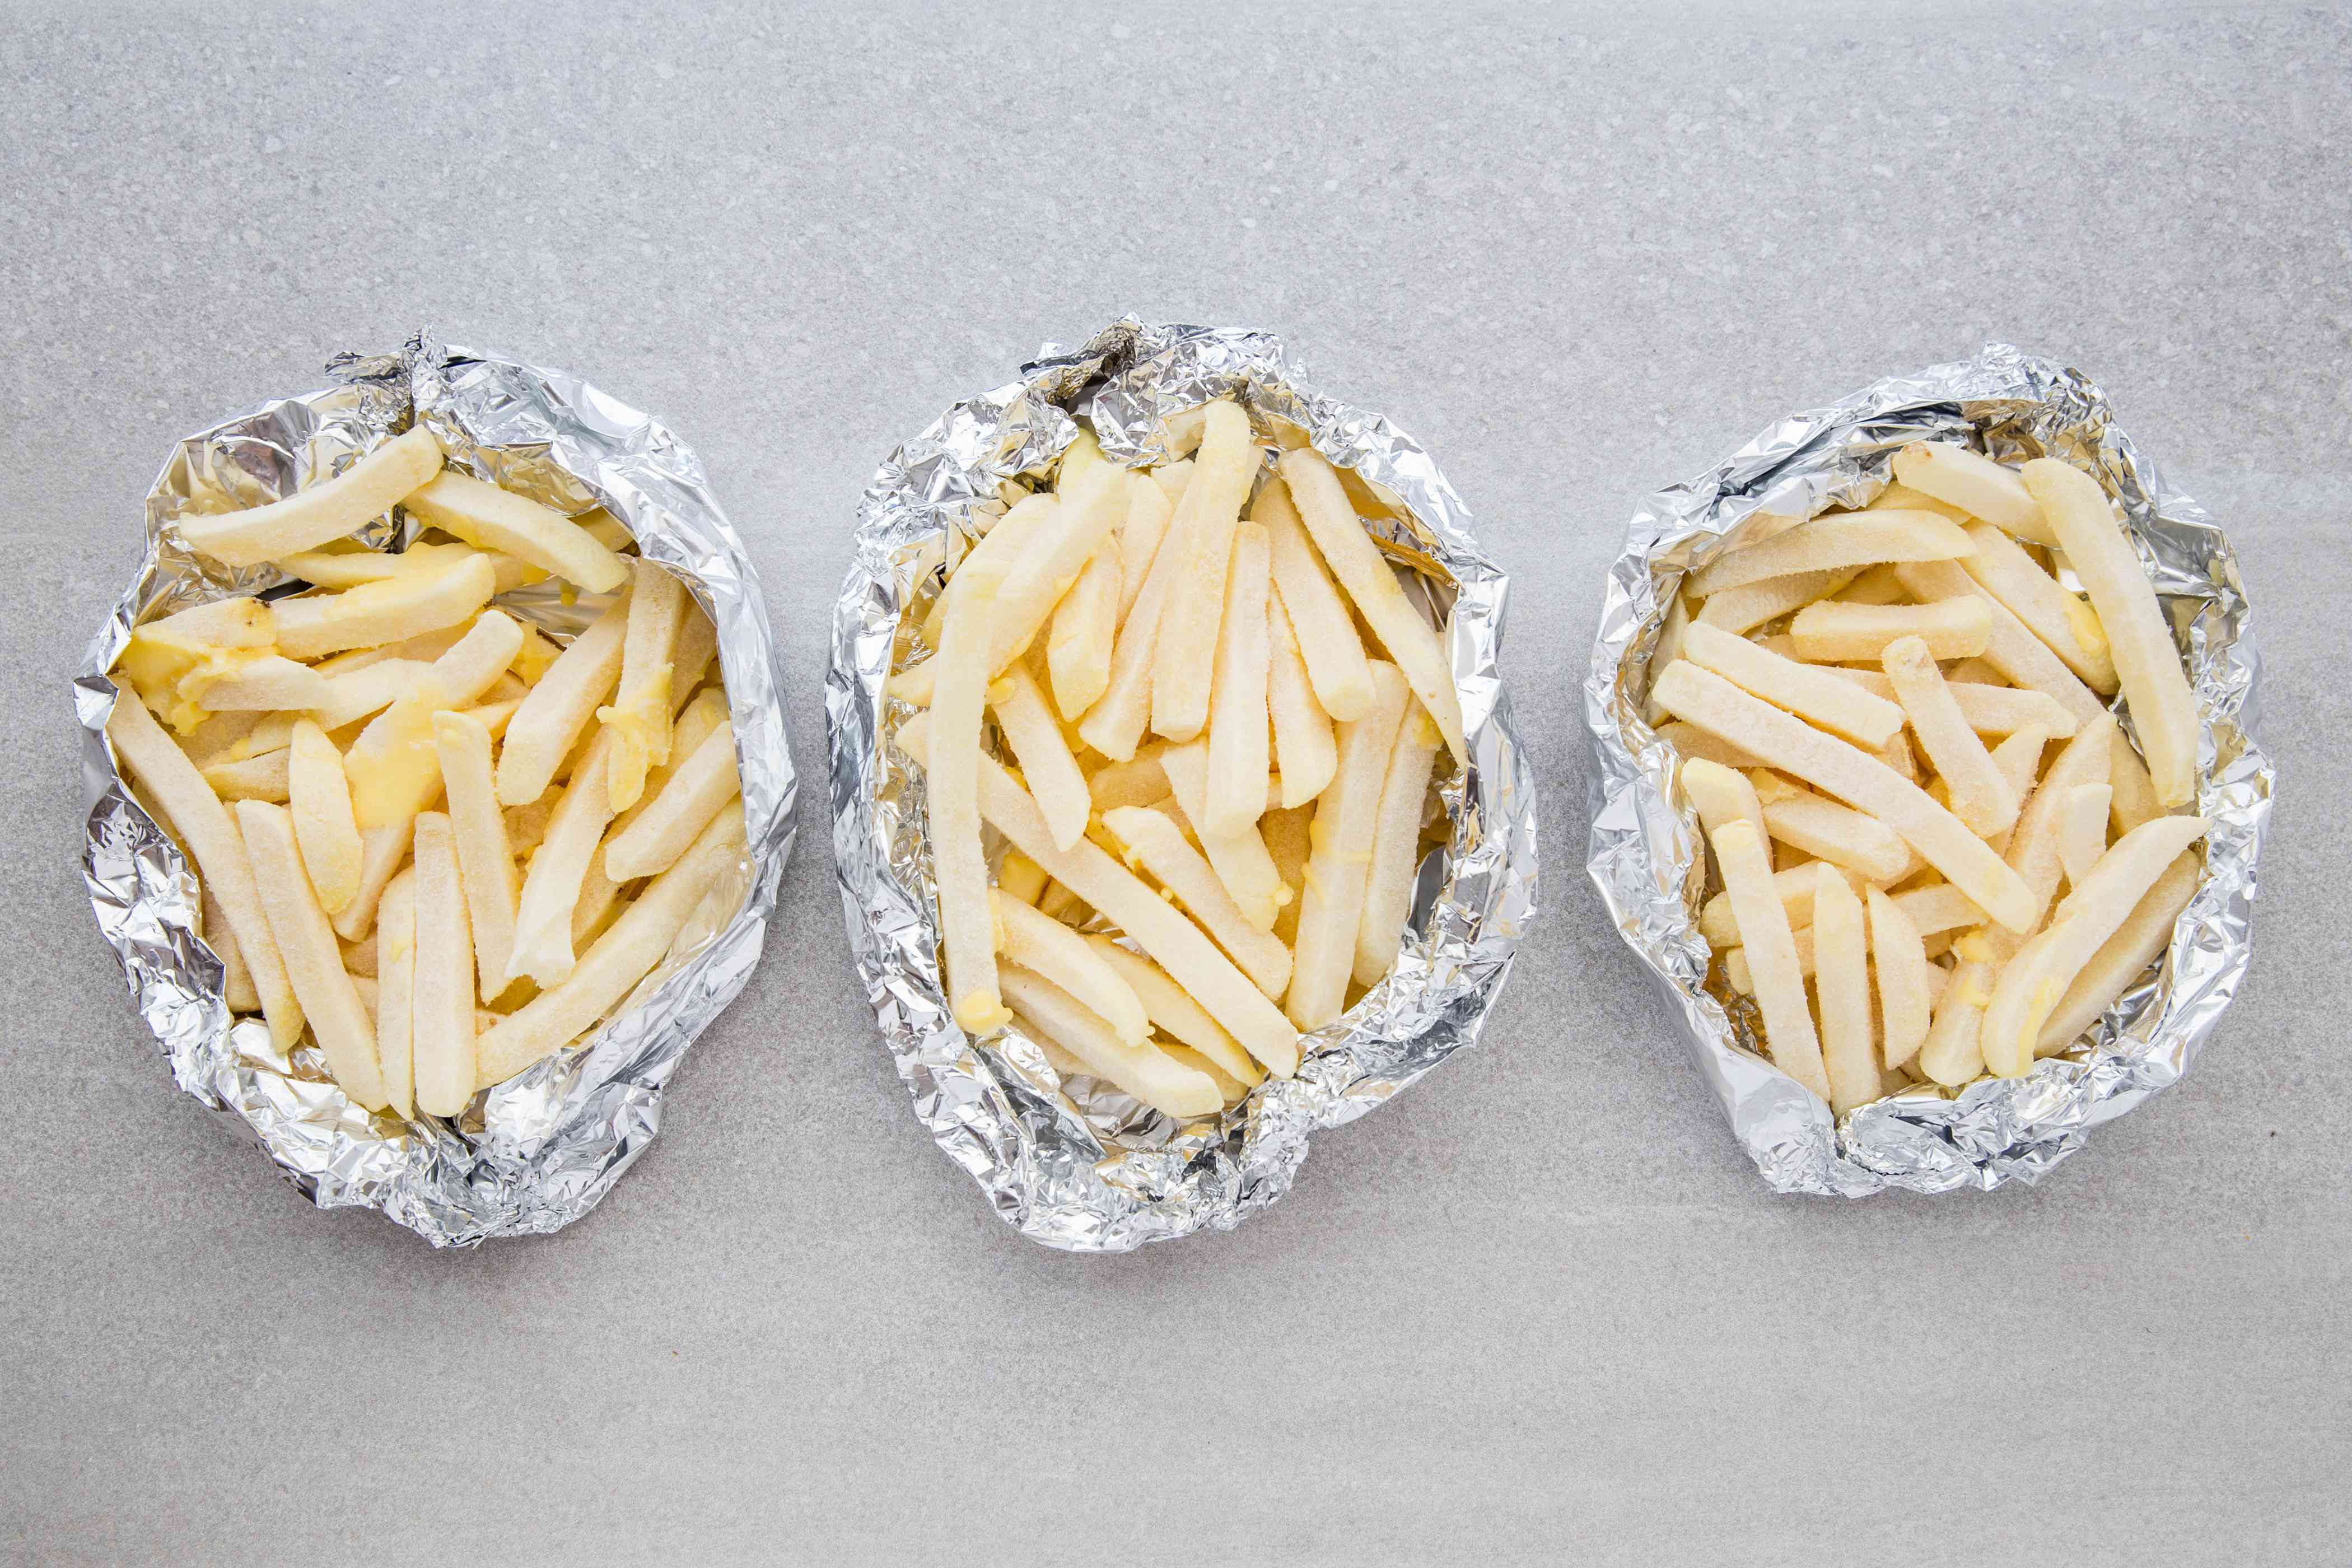 frozen french fries in aluminum foil boats